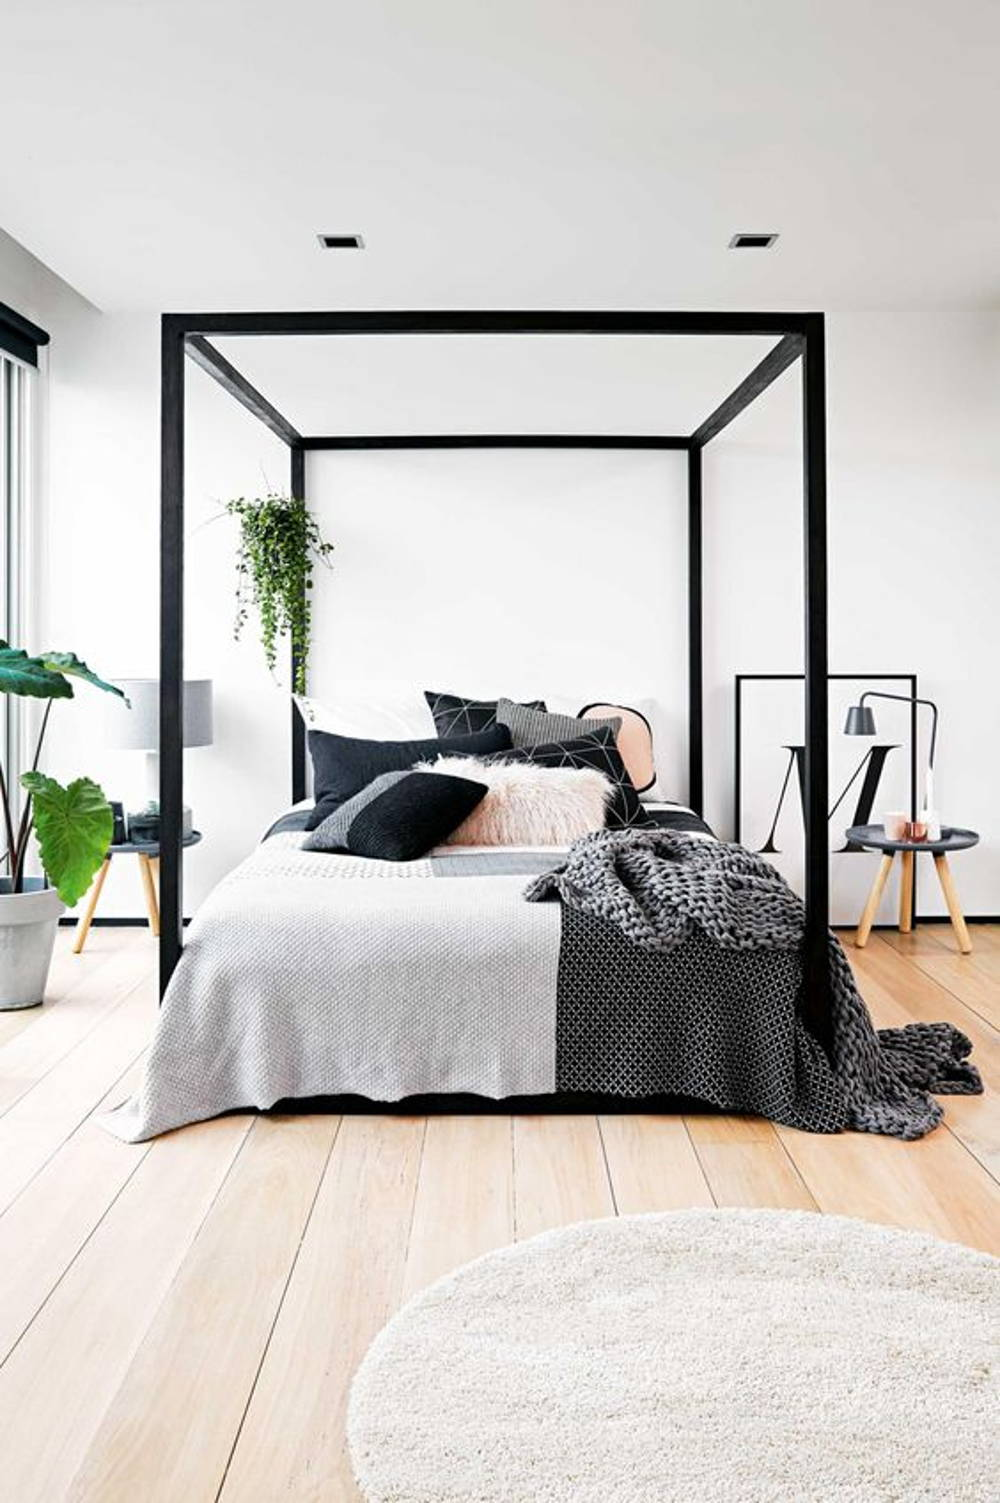 20 Modern Master Bedroom Interior Ideas To Drool Over Atap Co